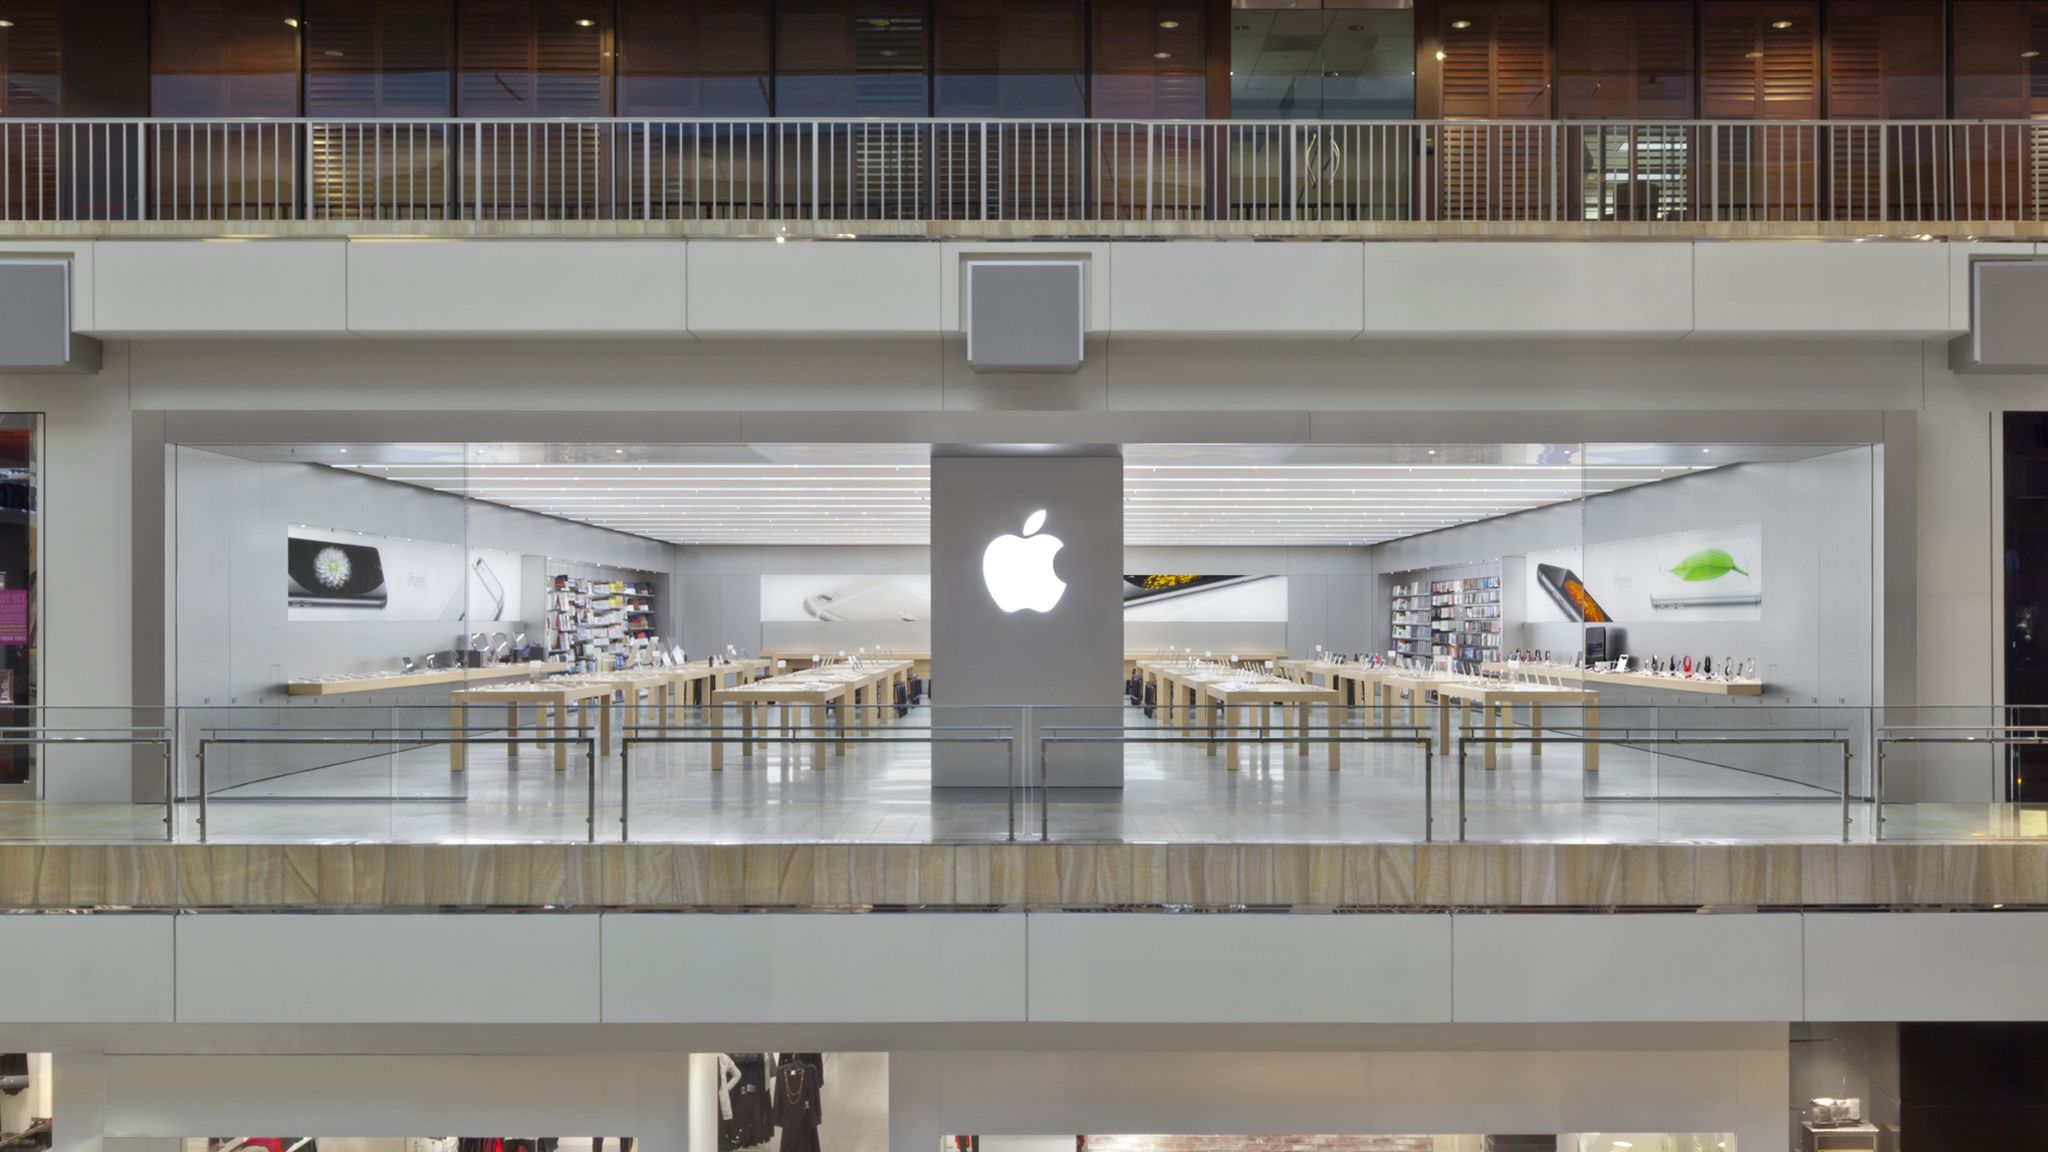 Discover inspiring programs happening every day near you. Find out what's going on at Apple Houston Galleria with Today at Apple.